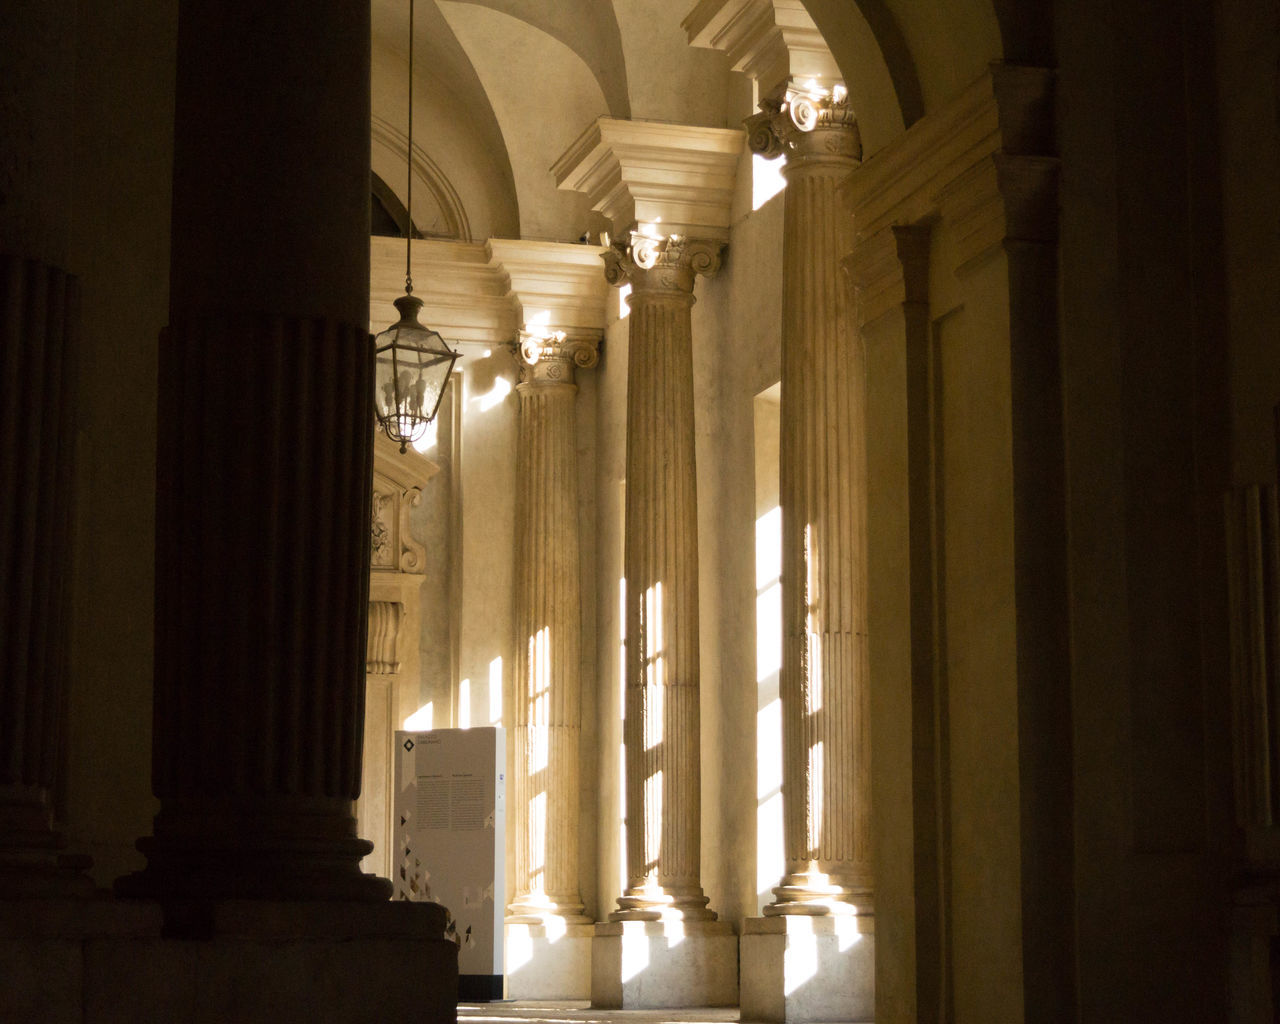 architectural column, indoors, architecture, illuminated, built structure, corridor, no people, curtain, home interior, day